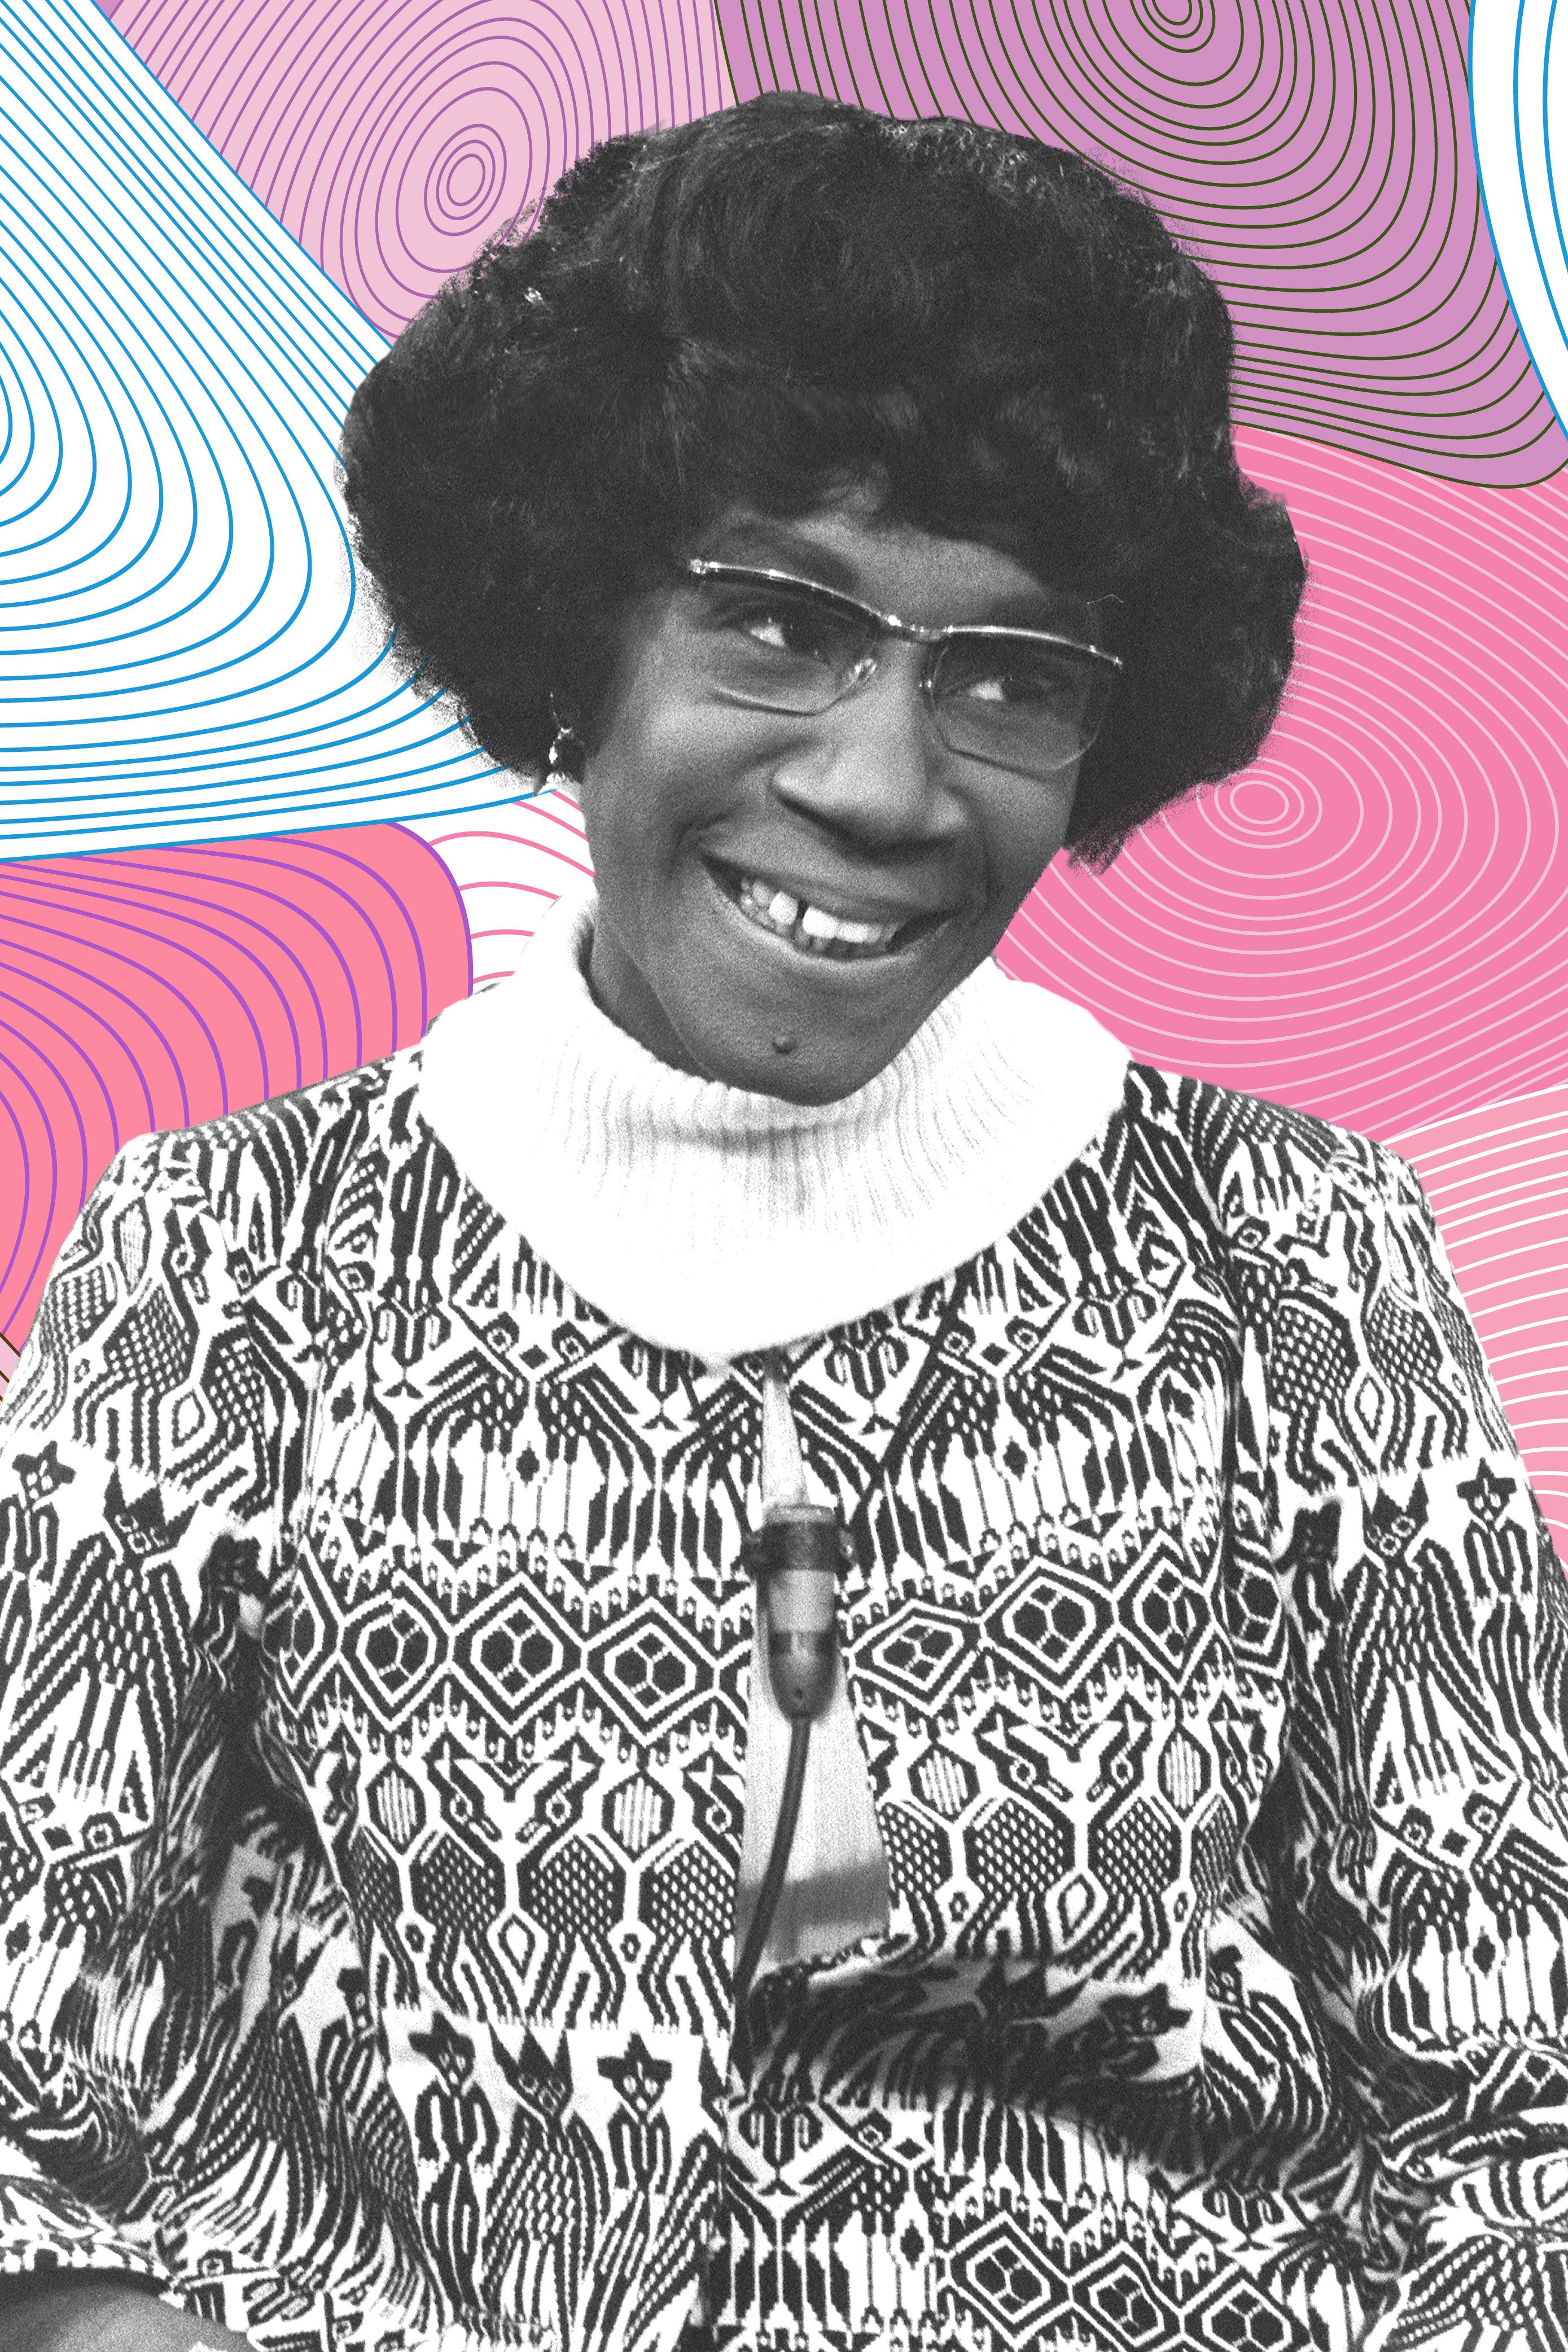 In Honor Of Shirley Chisholm, Let's Elect Leaders Who Speak Truth